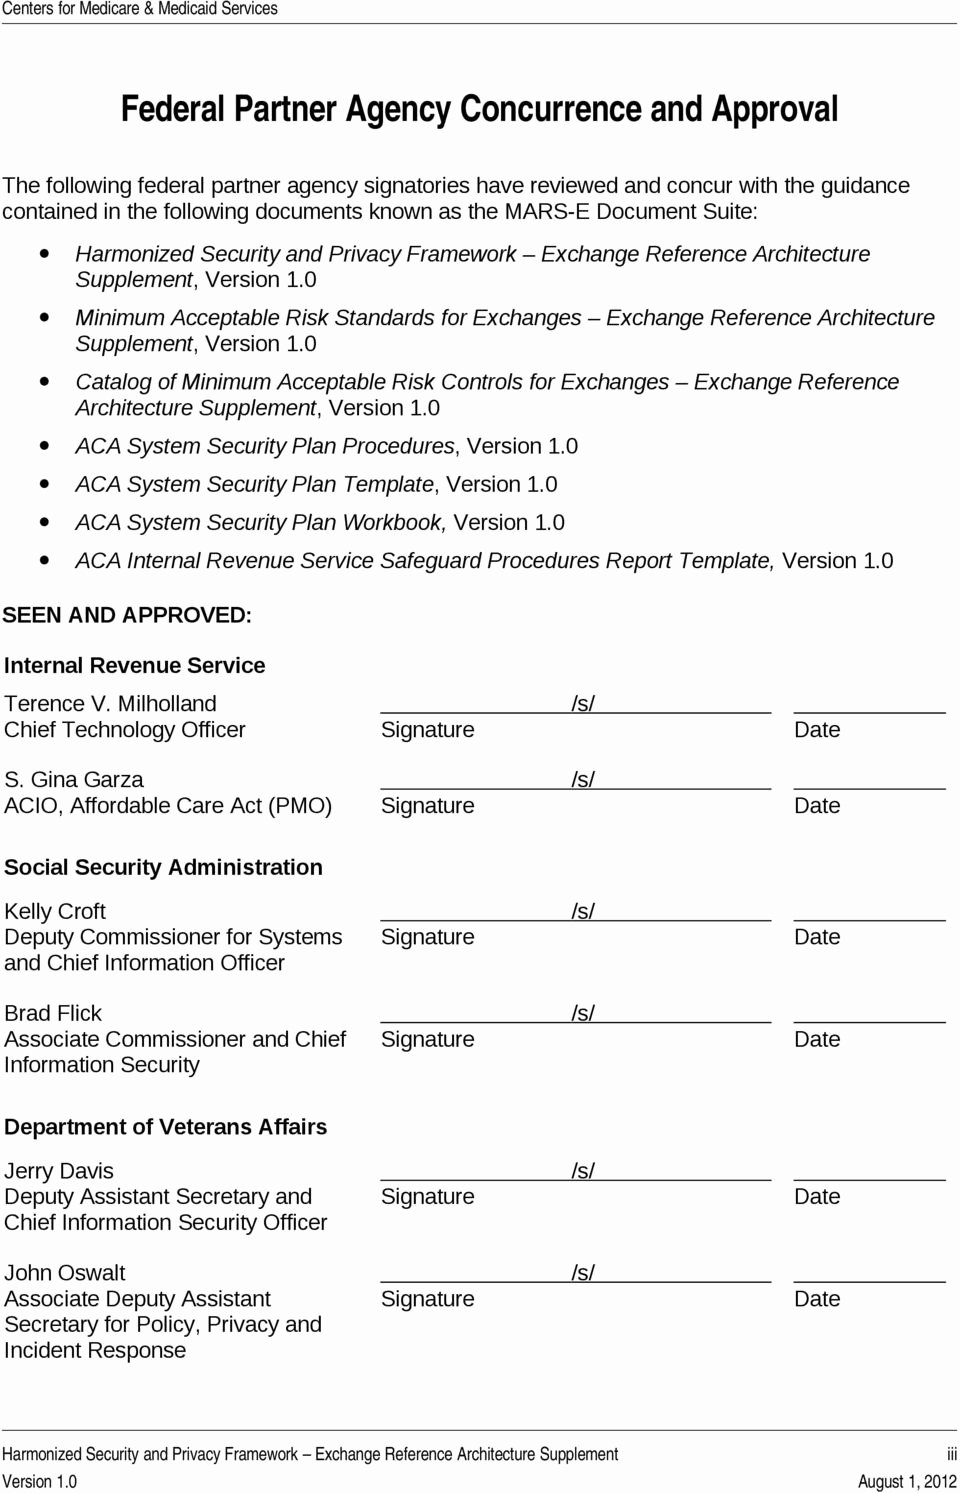 Dod System Security Plan Template Inspirational Harmonized Security and Privacy Framework Exchange